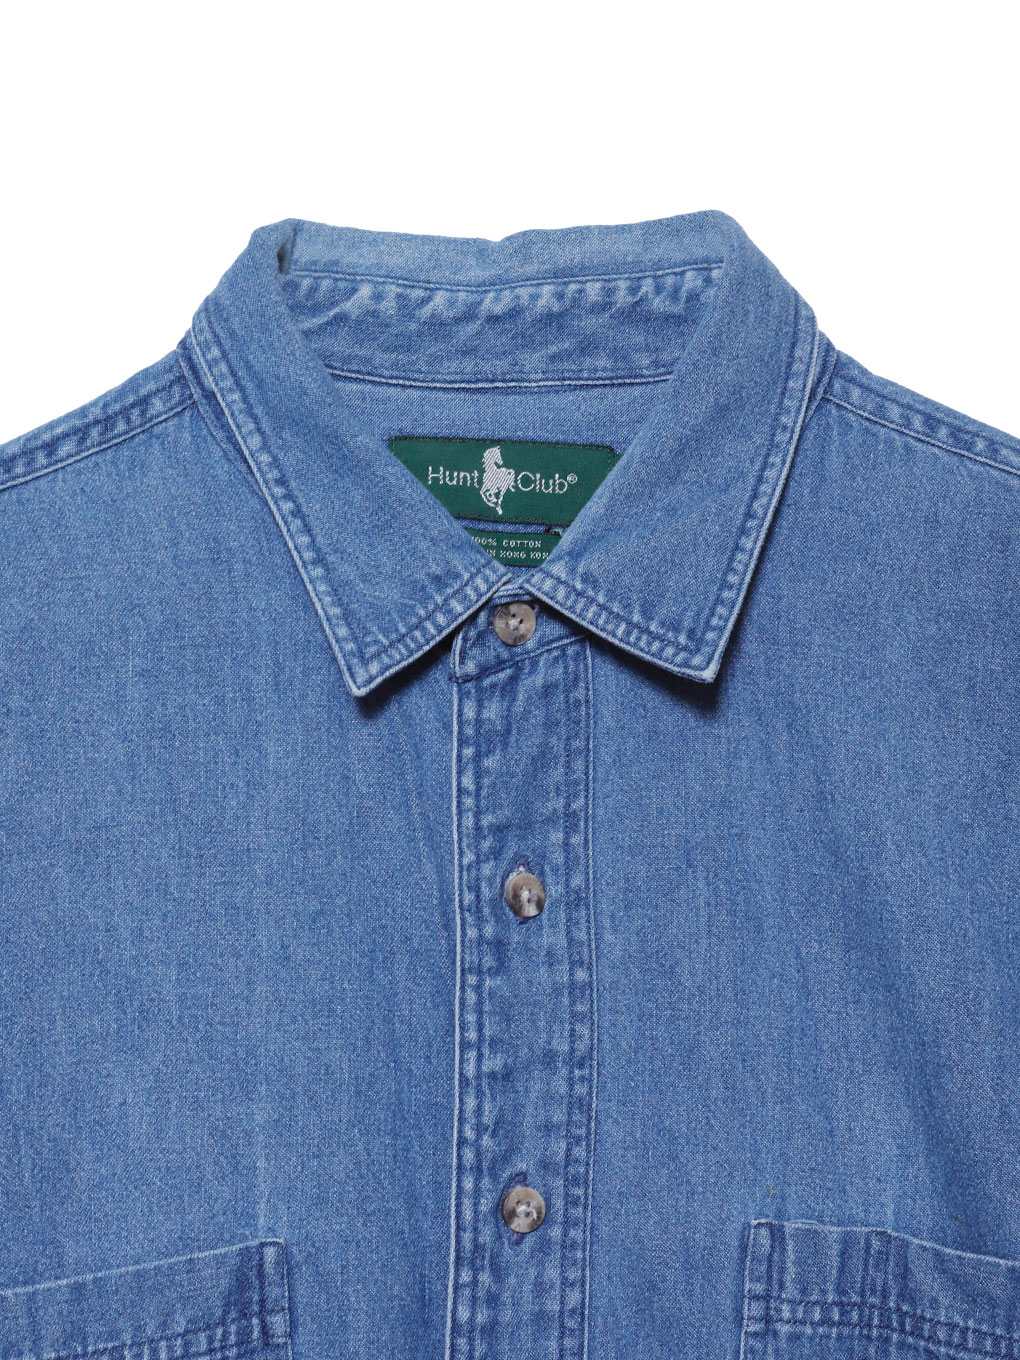 VINTAGE/DENIM SHIRT